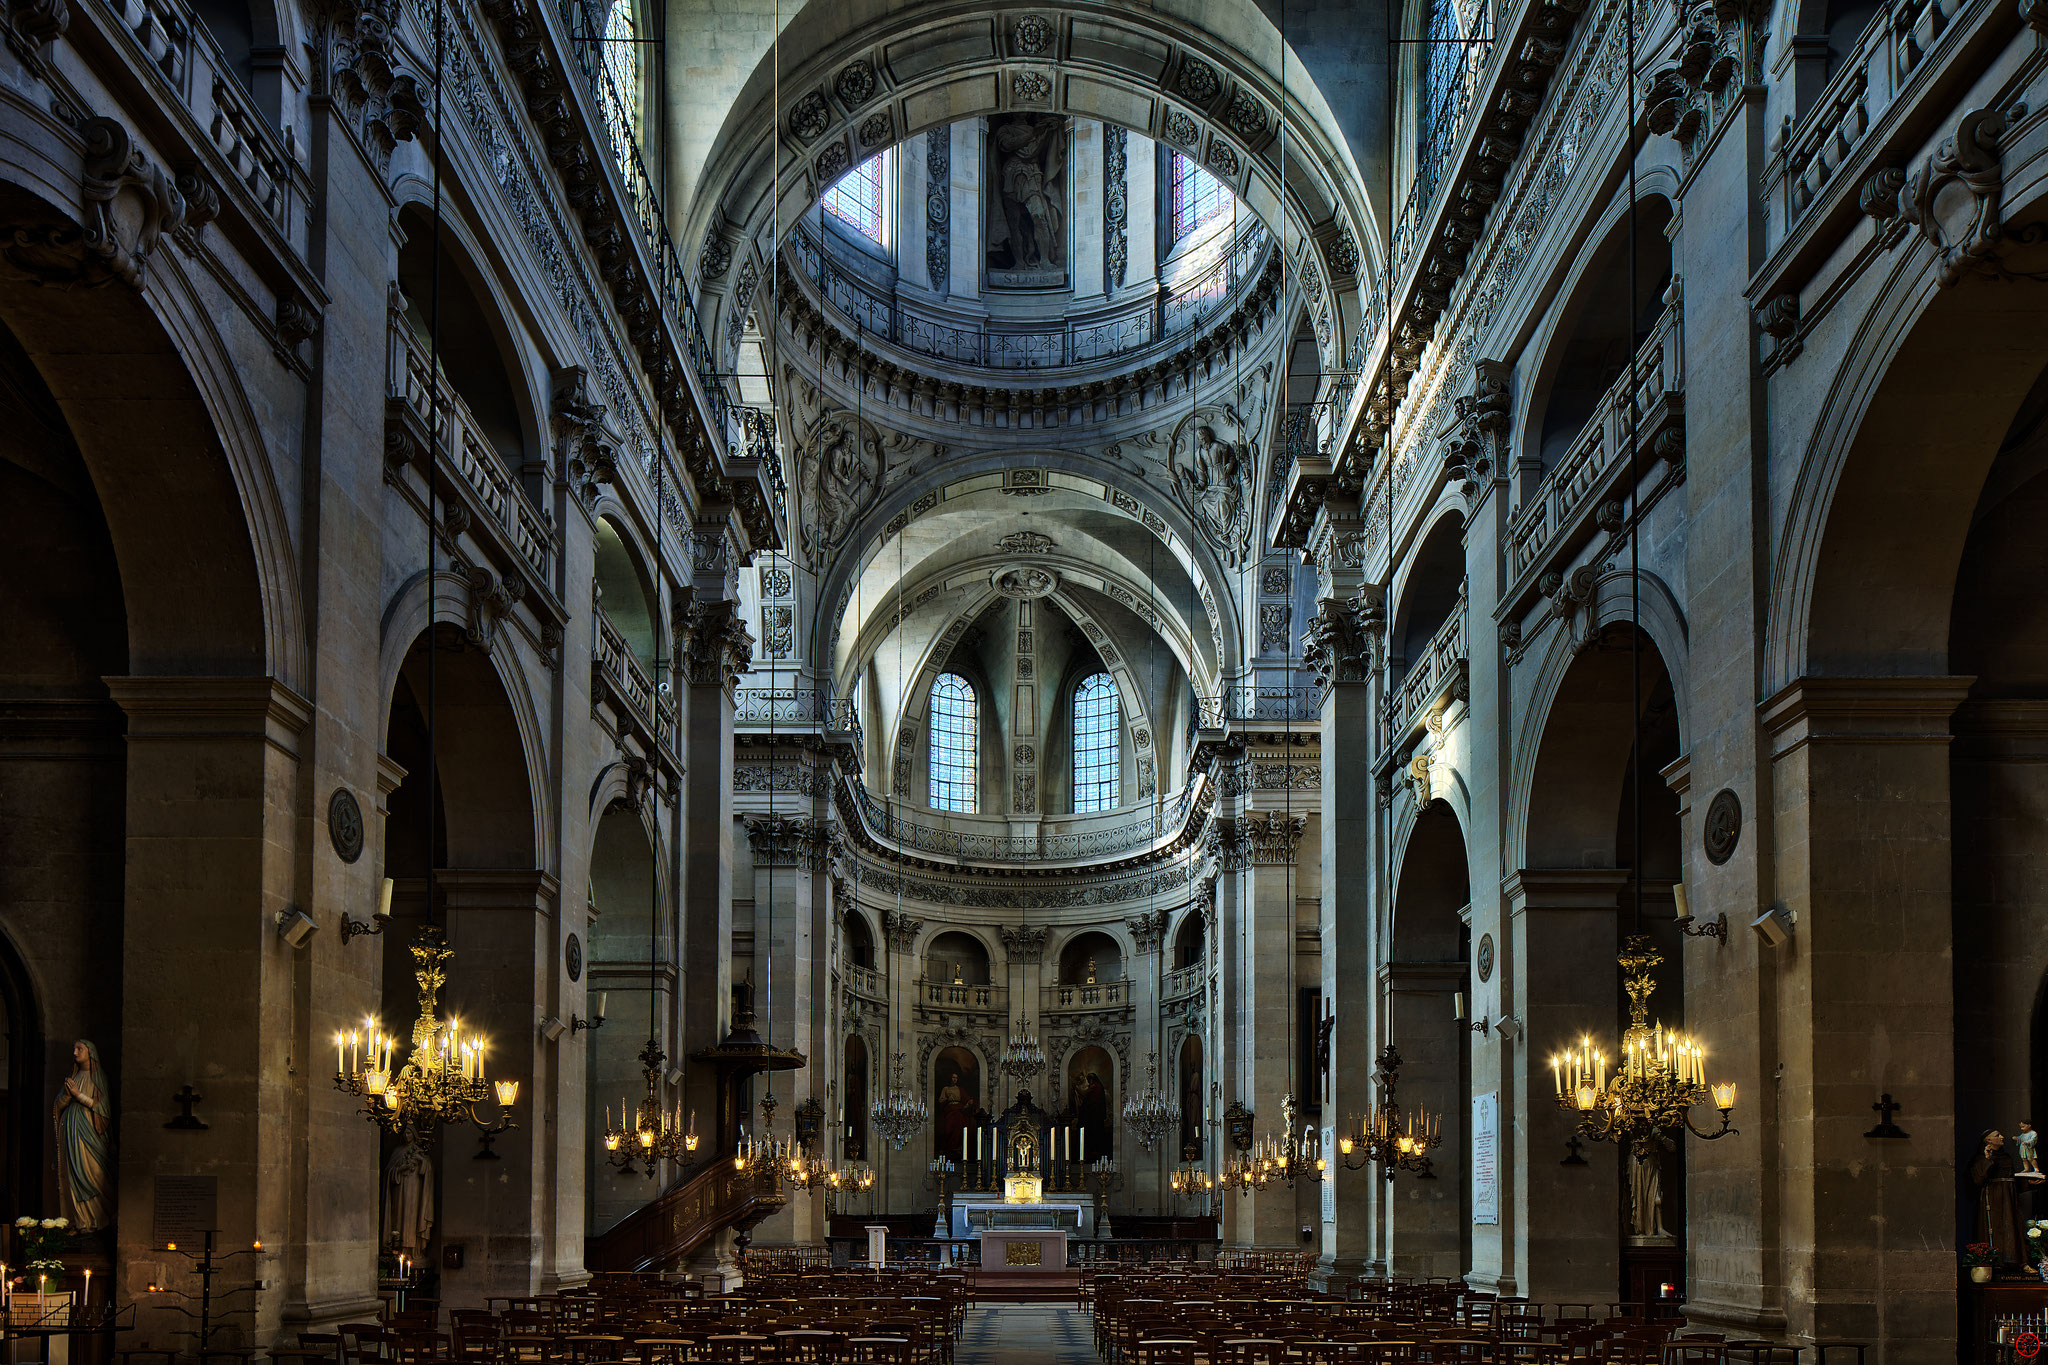 Eglise Saint-Paul Saint-Louis, Paris, France